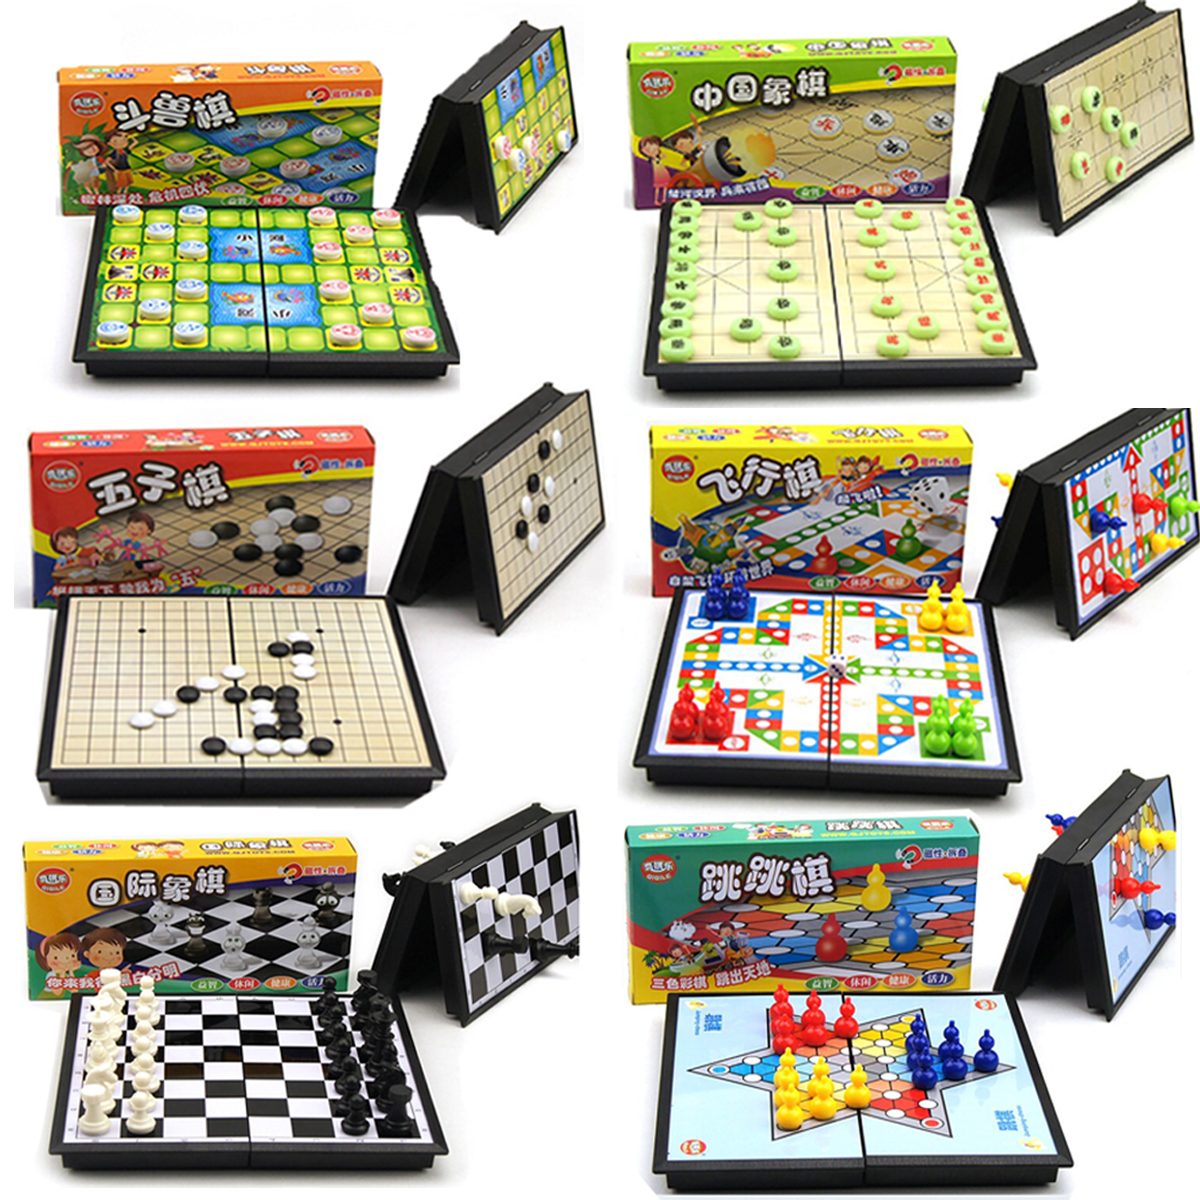 pro magnetic folding chess chess flying chess children's toys puzzle chess Go Chinese chess